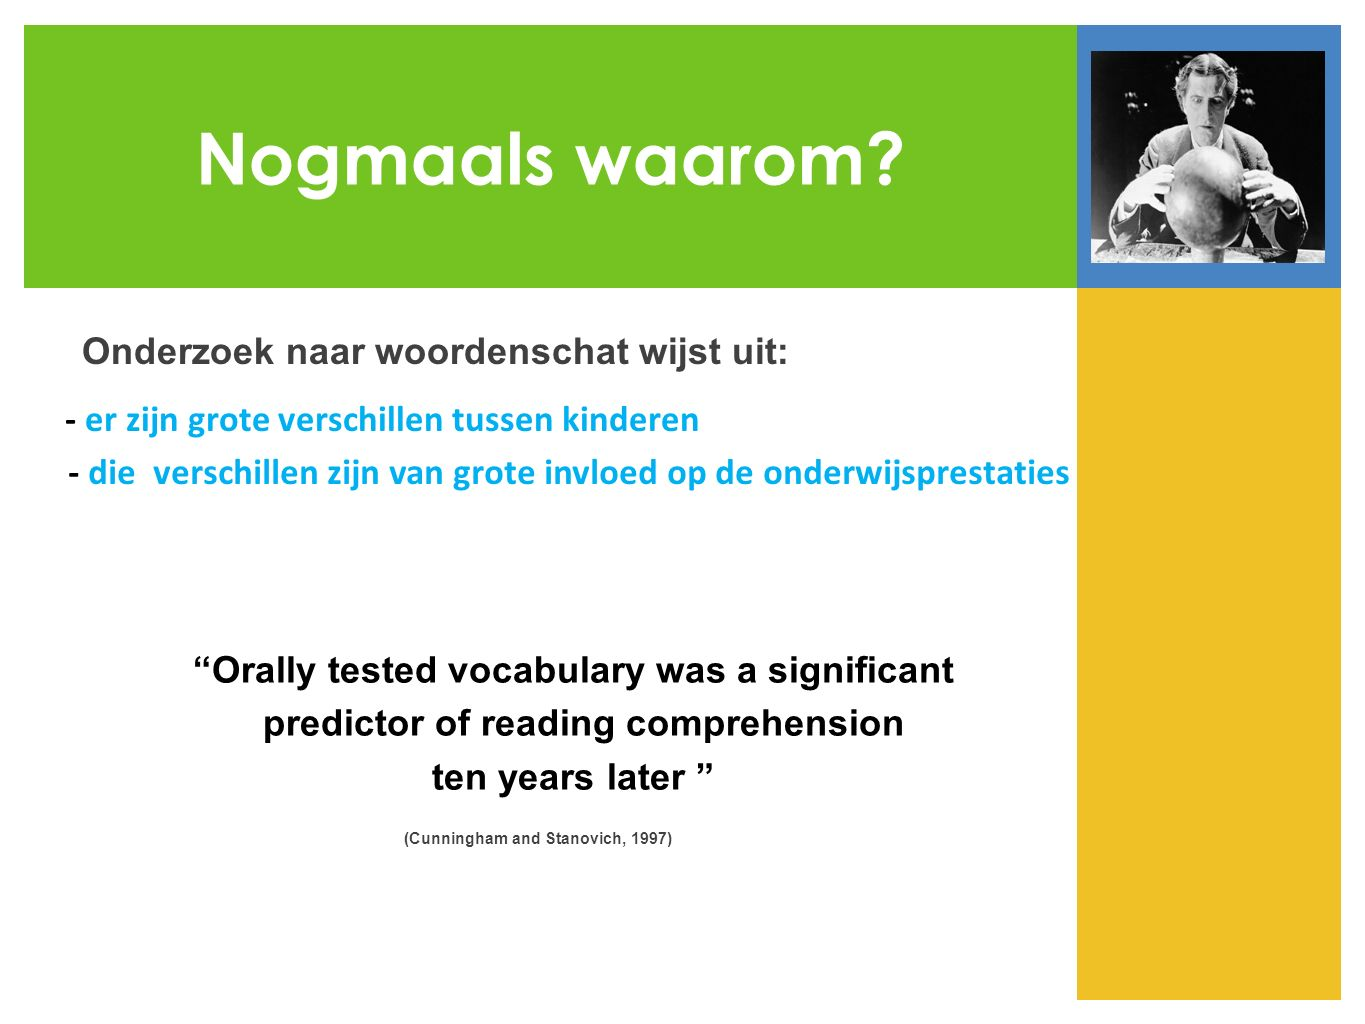 Nogmaals waarom Orally tested vocabulary was a significant